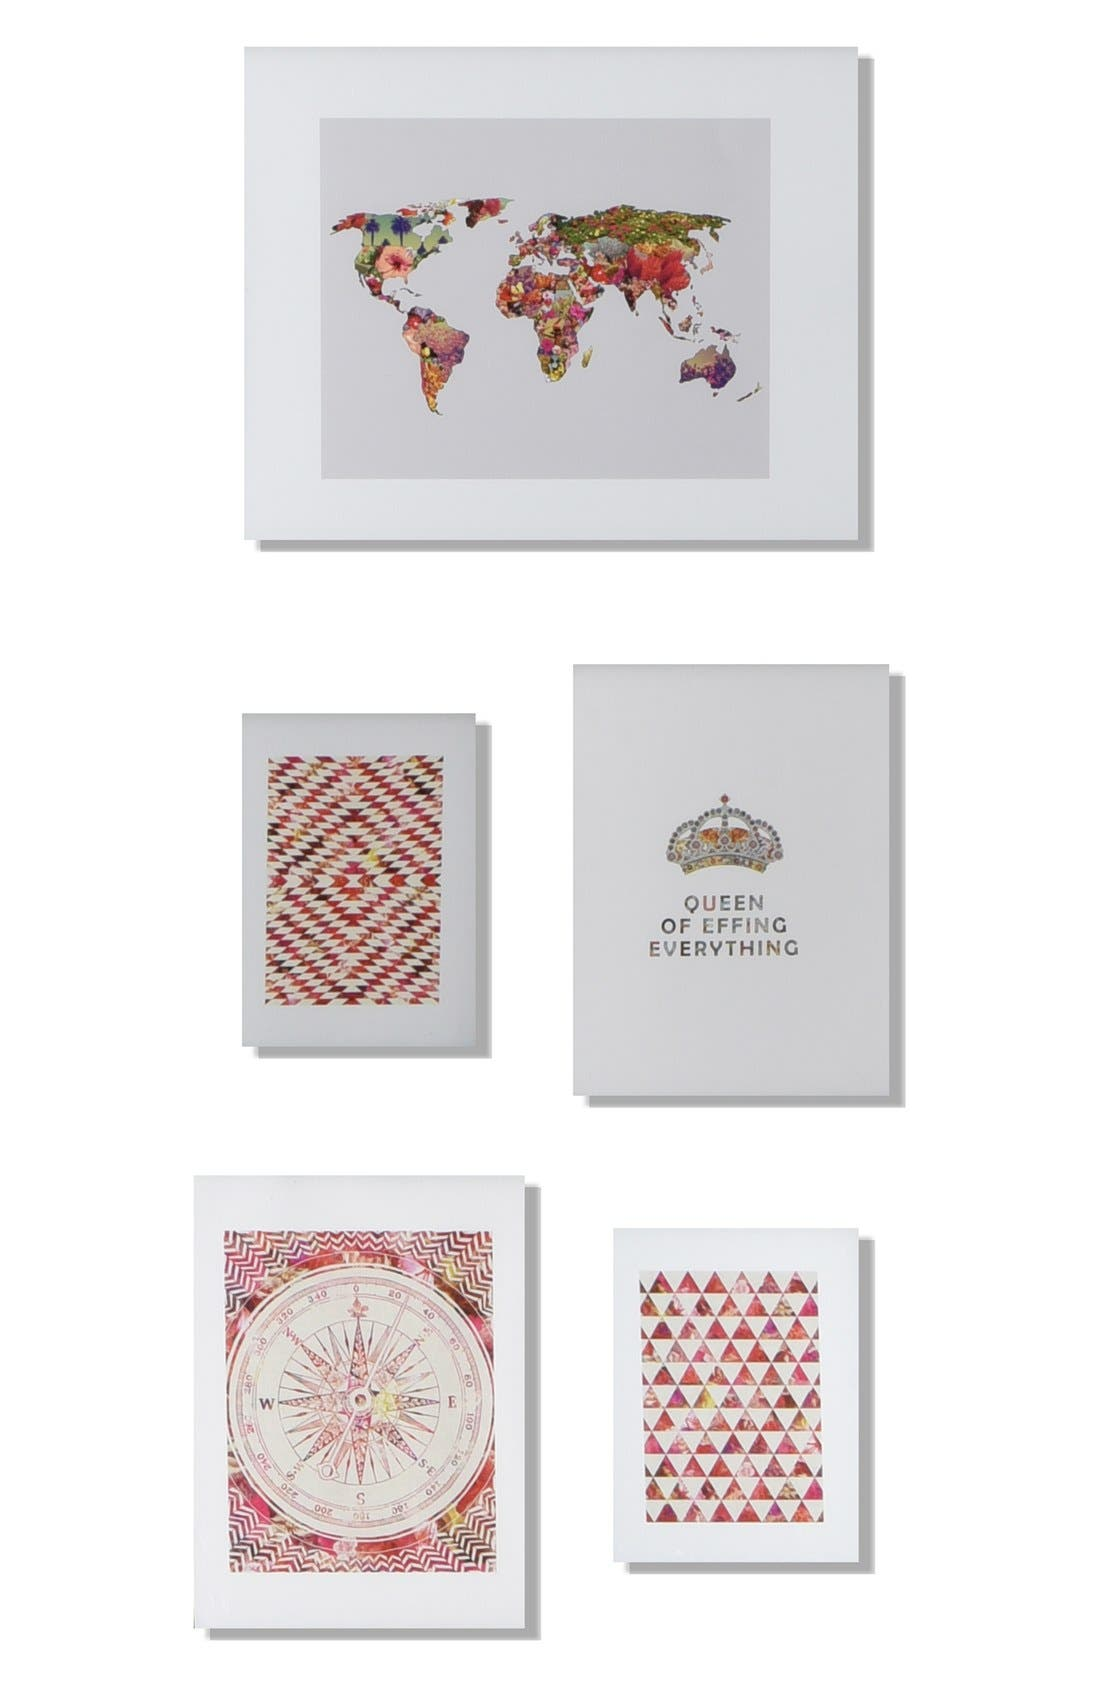 DENY DESIGNS 'It's Your World' Wall Art Gallery